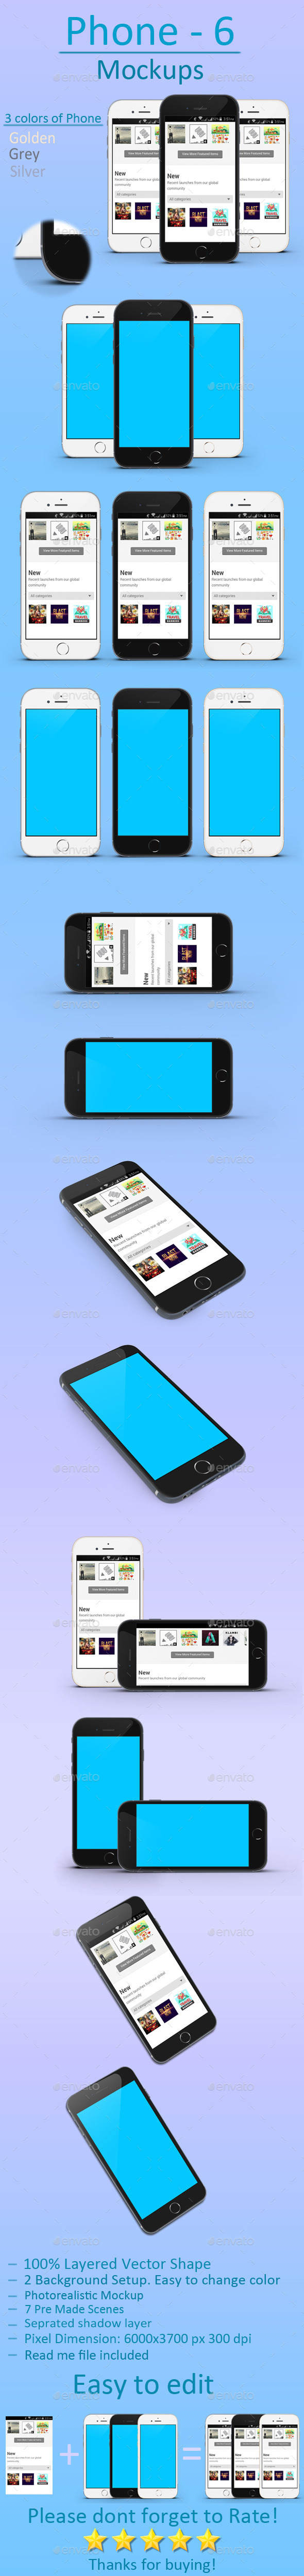 Phone 6 mockups - Mobile Displays